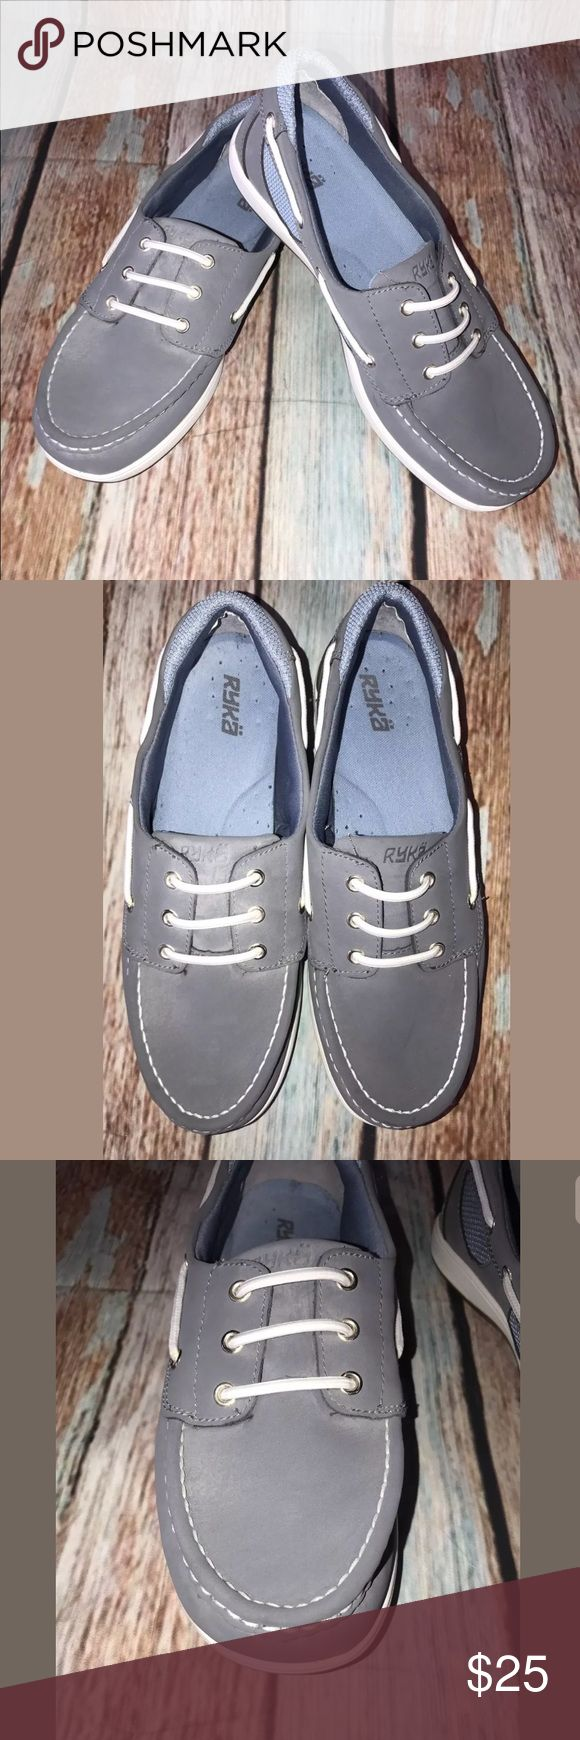 Ryka Chatham Nubuck Leather Slip-on Boat Shoes Ryka Chatham Nubuck Leather Slip-on Boat Shoes Womens Gray Size 9 Leather upper Ryka Shoes Flats & Loafers